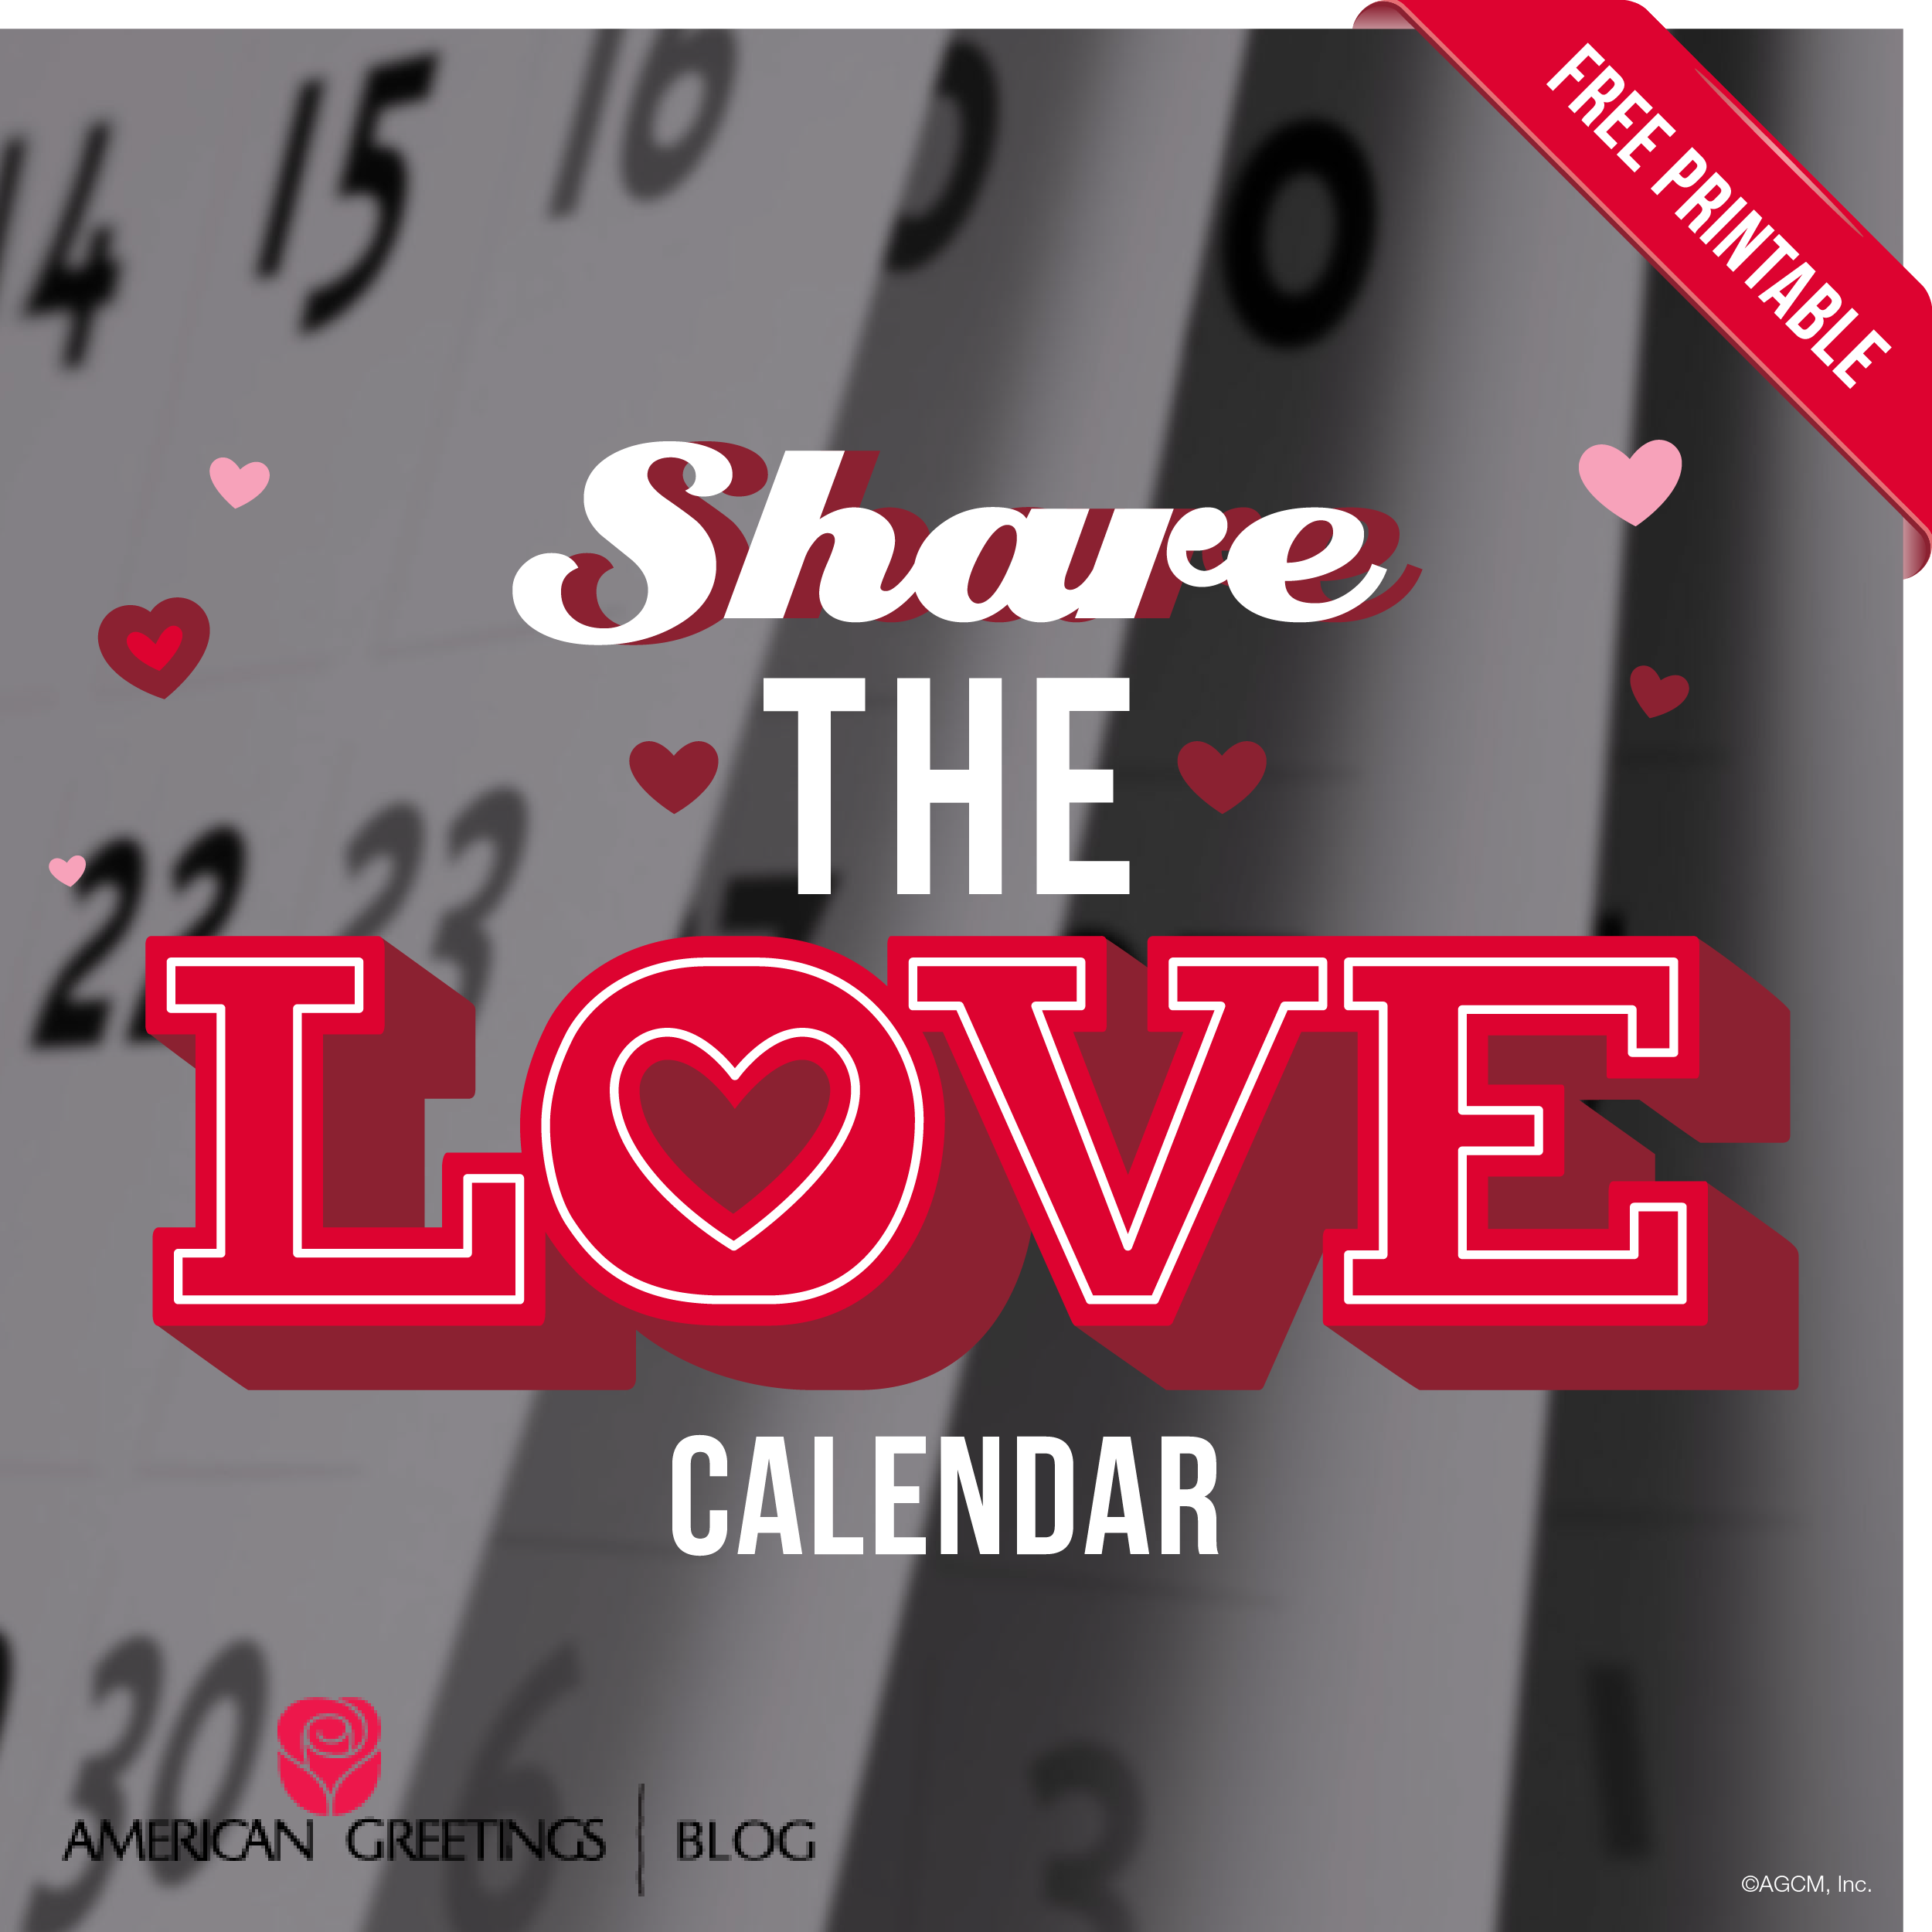 Valentines day archives page 2 of 2 american greetings blog share the love free printable valentines day calendar kristyandbryce Choice Image